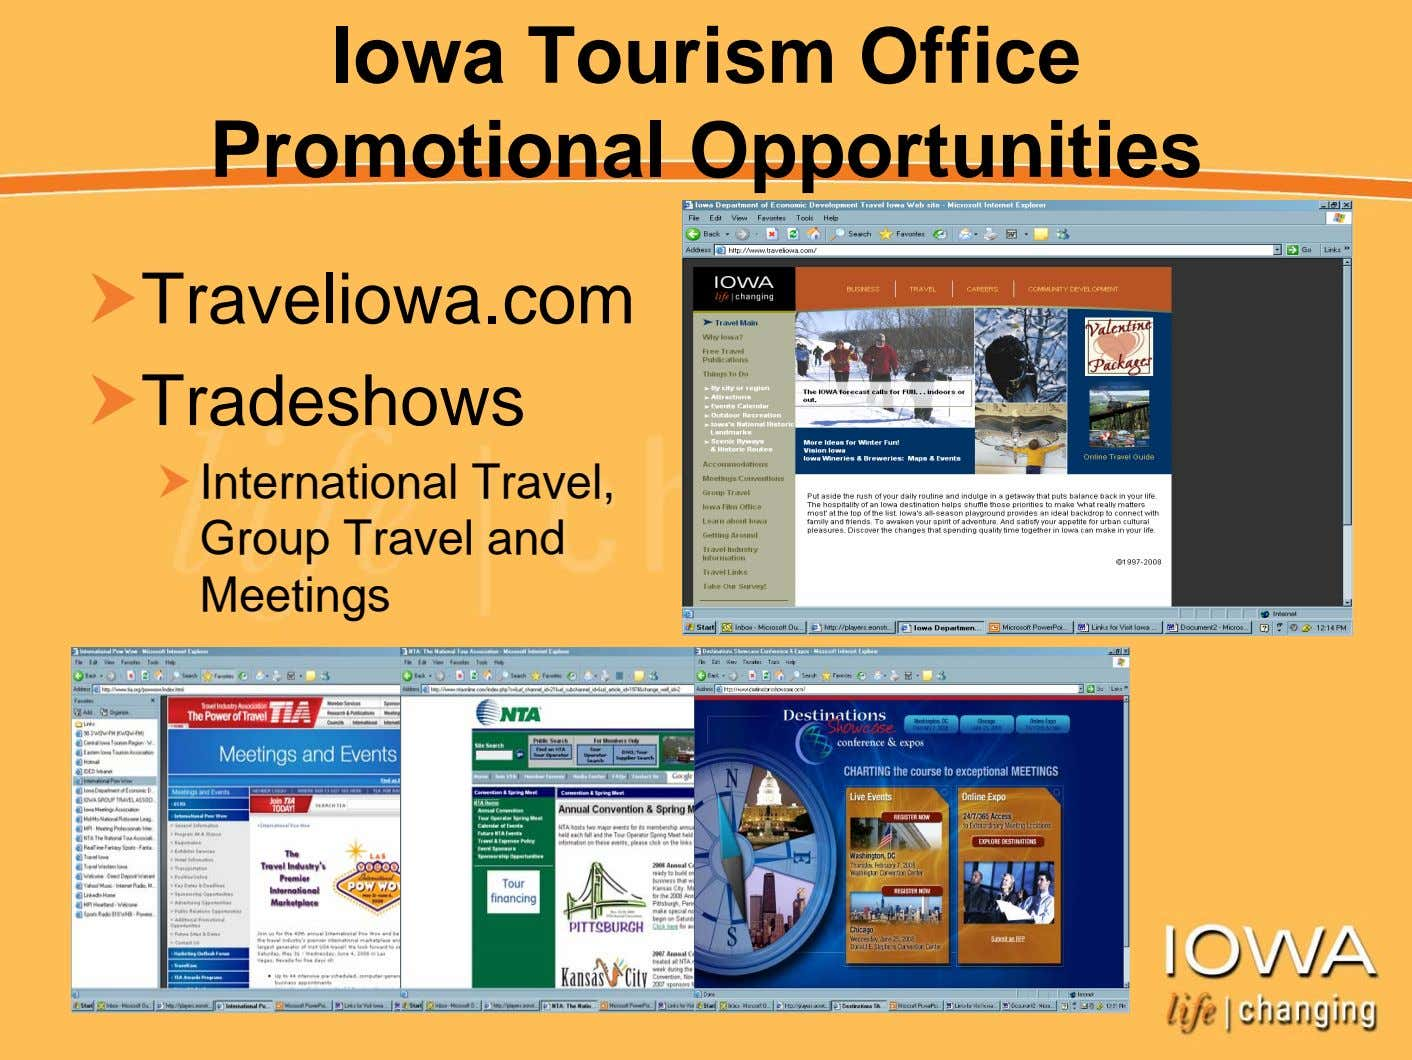 Iowa Tourism Office Promotional Opportunities Traveliowa.com Tradeshows International Travel, Group Travel and